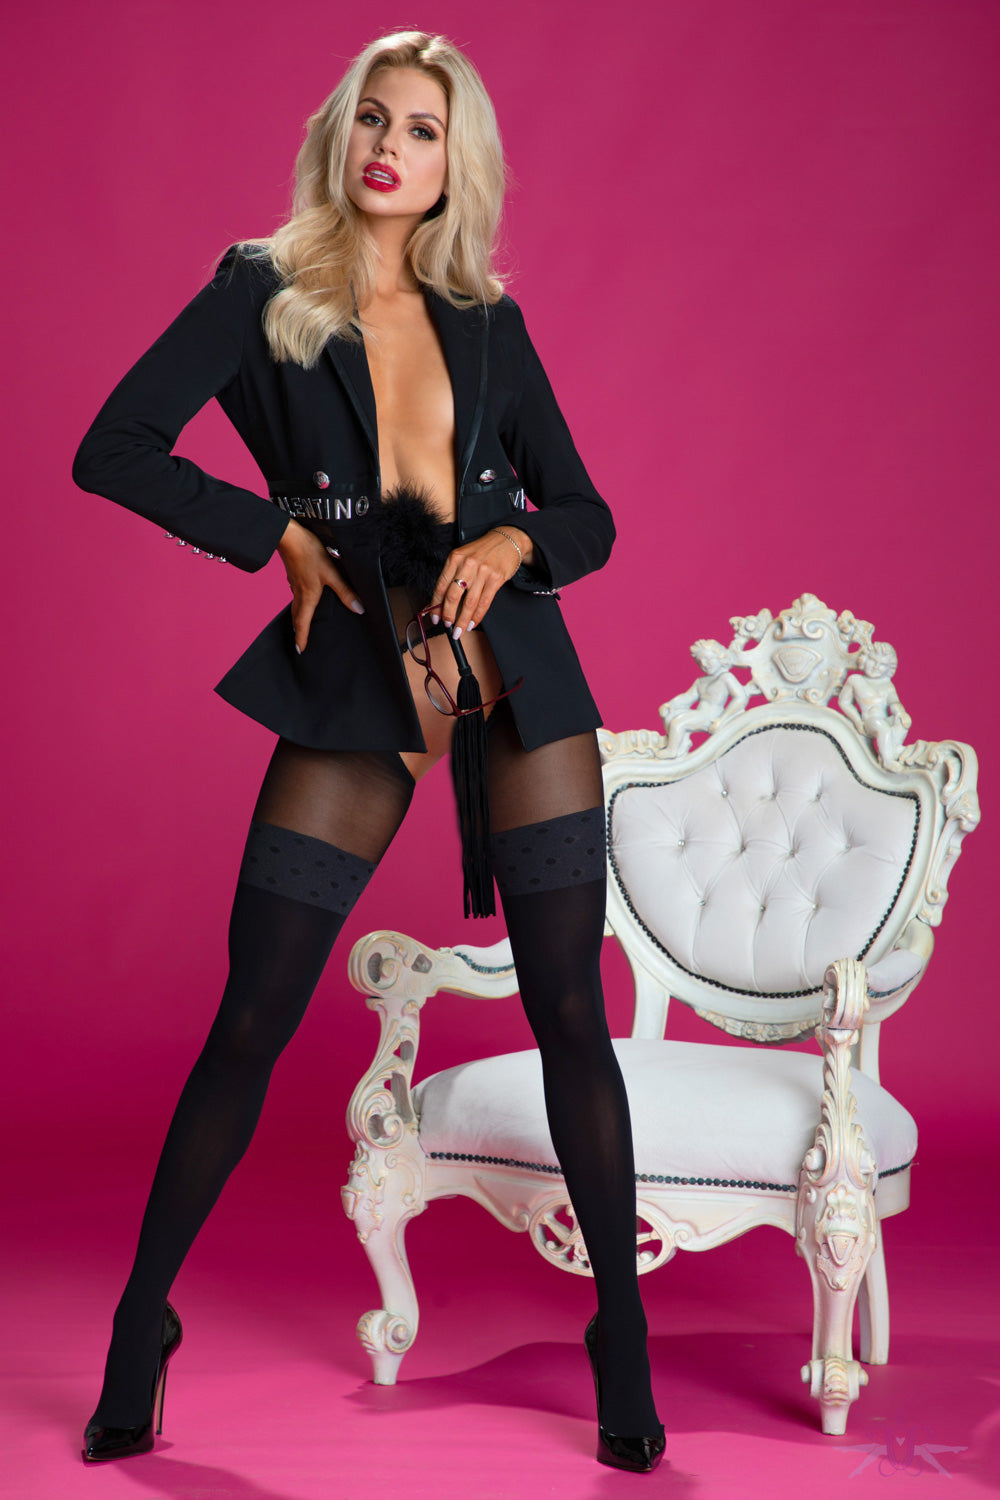 Amour Secretary Open Tights